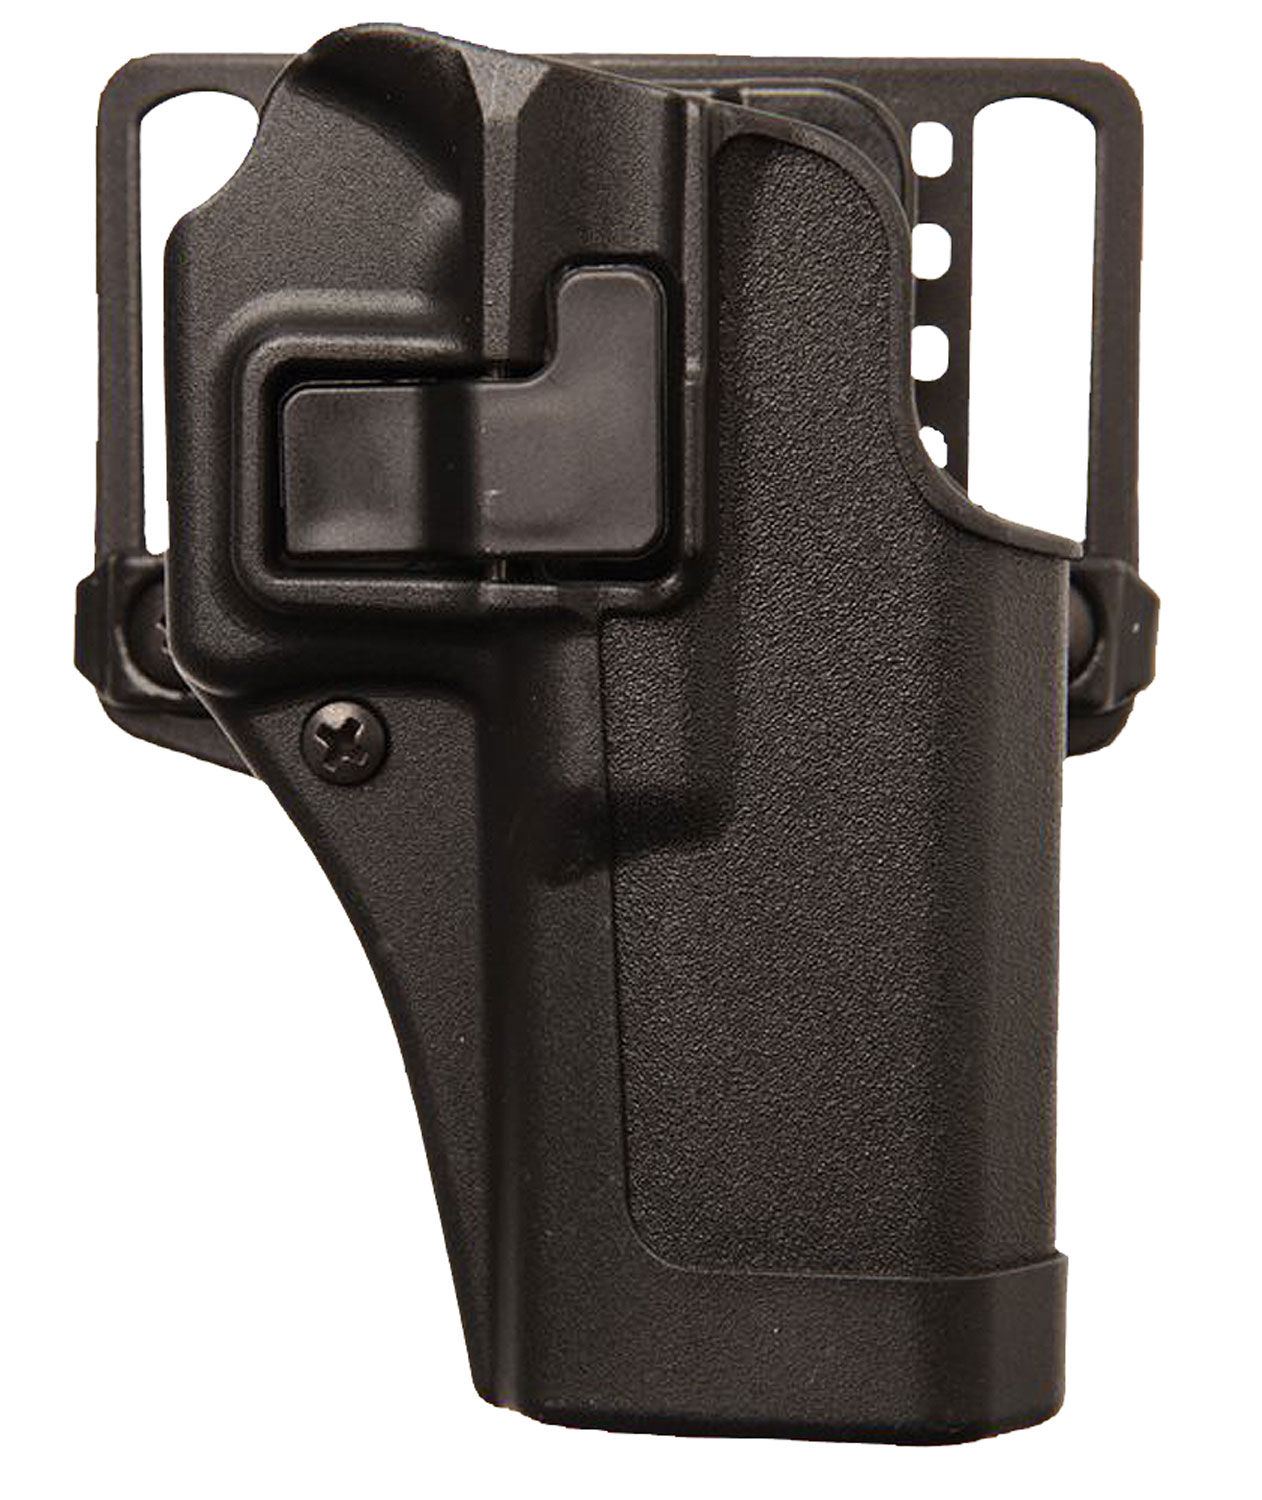 Blackhawk 410544BKR Serpa CQC Concealment Polymer Matte Black Finish